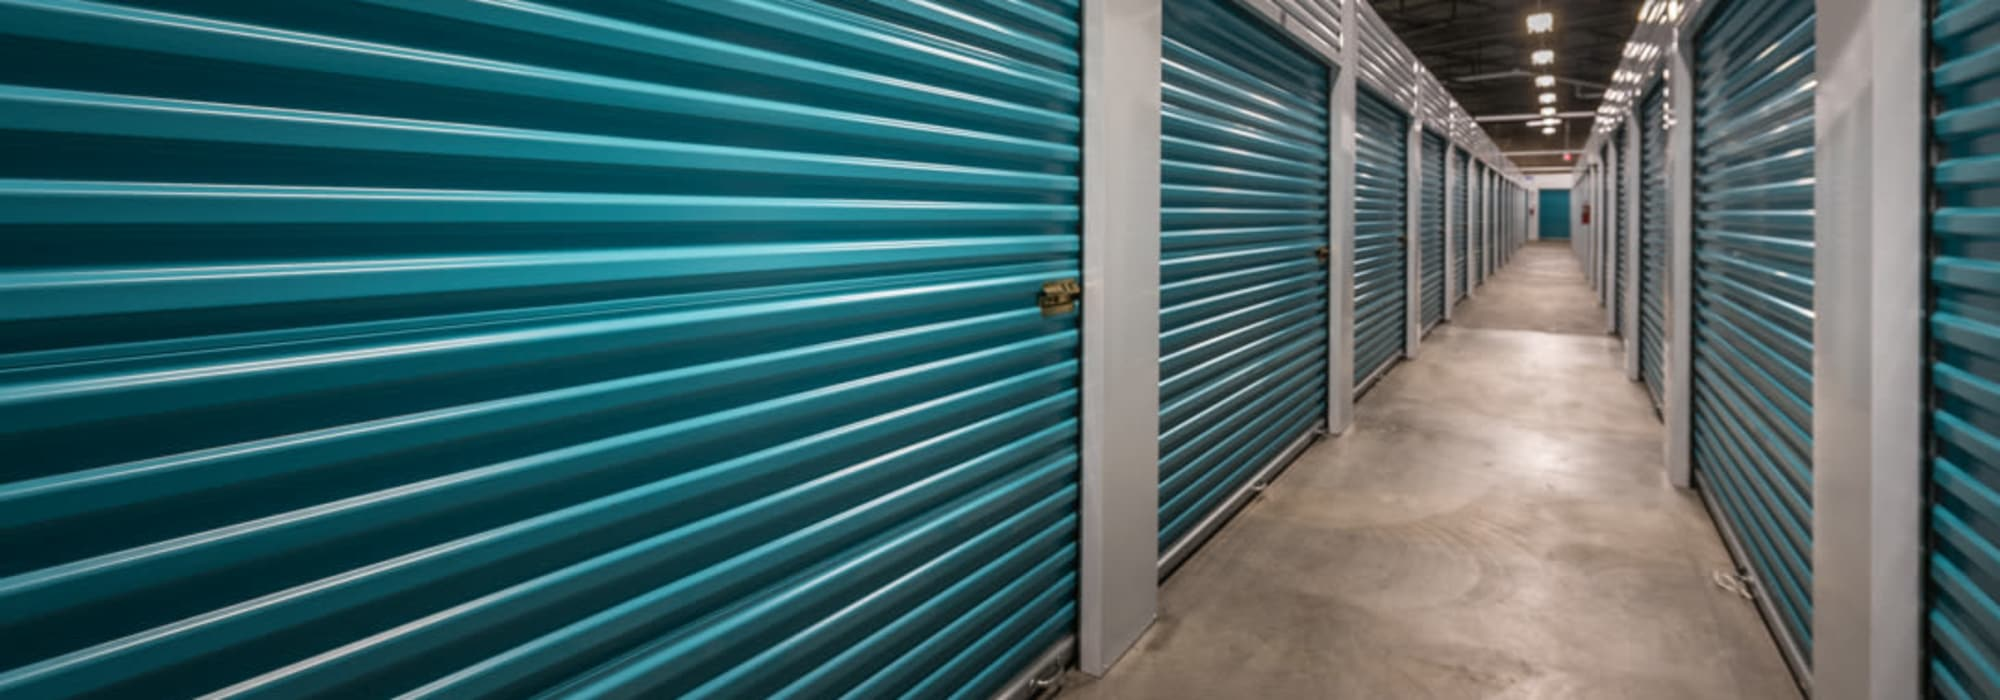 Self storage in New Orleans Louisiana